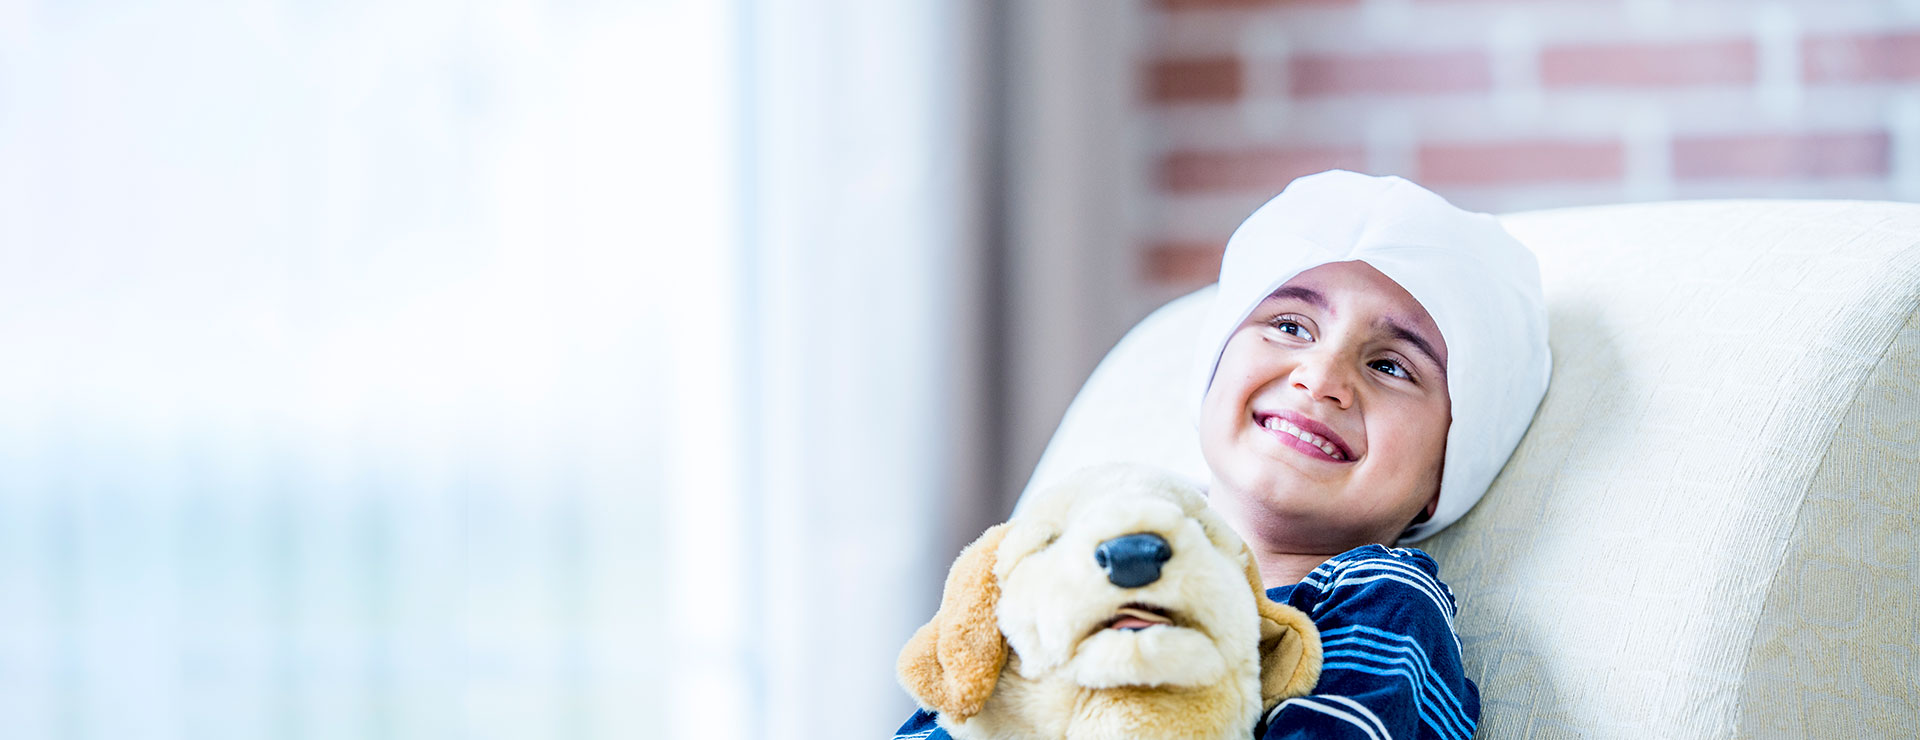 A young cancer patient holds a stuffed dog plush